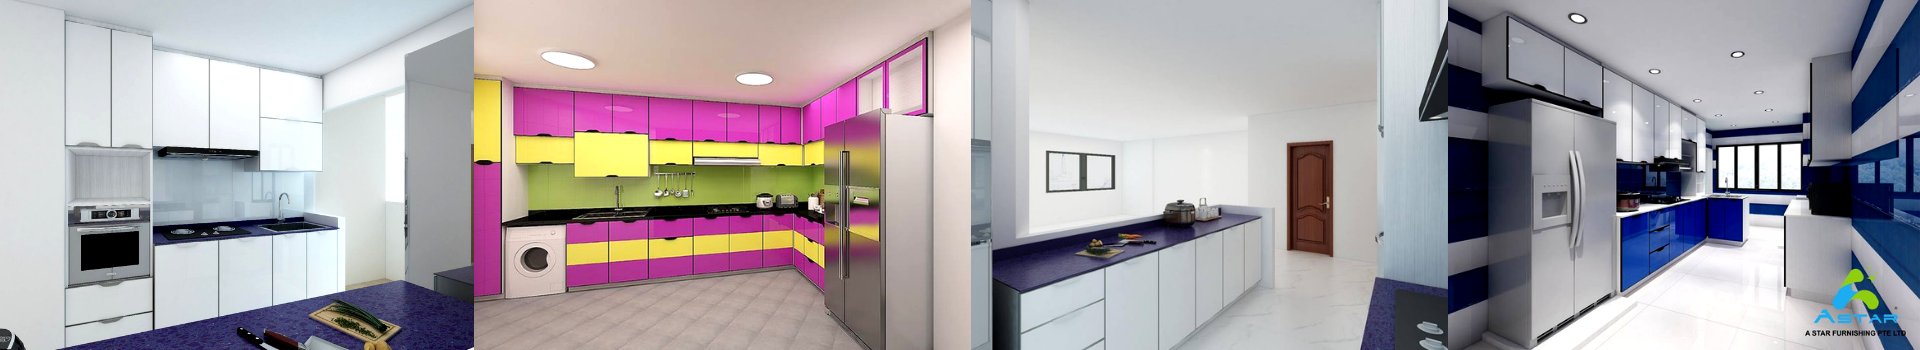 SPECIAL $5,299 A STAR ALUMINIUM KITCHEN CABINET PROMOTION